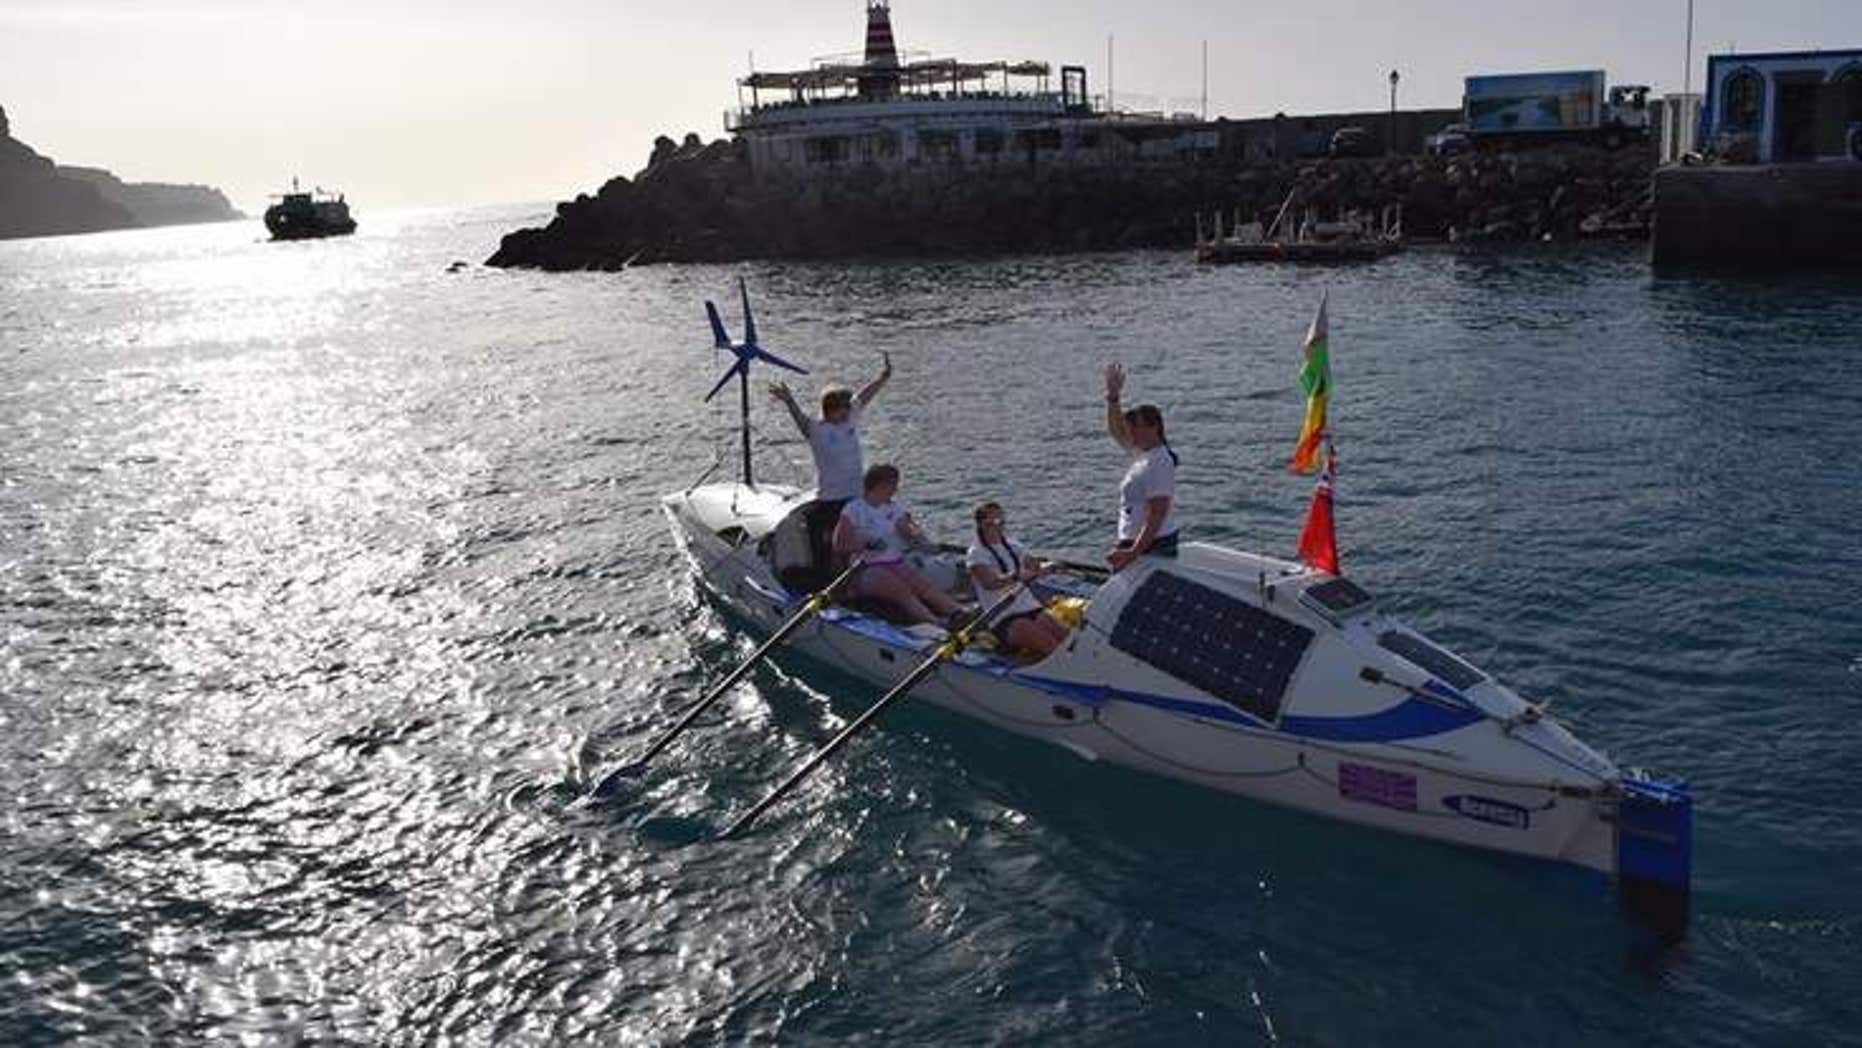 The rowers setting off on their trip in January.